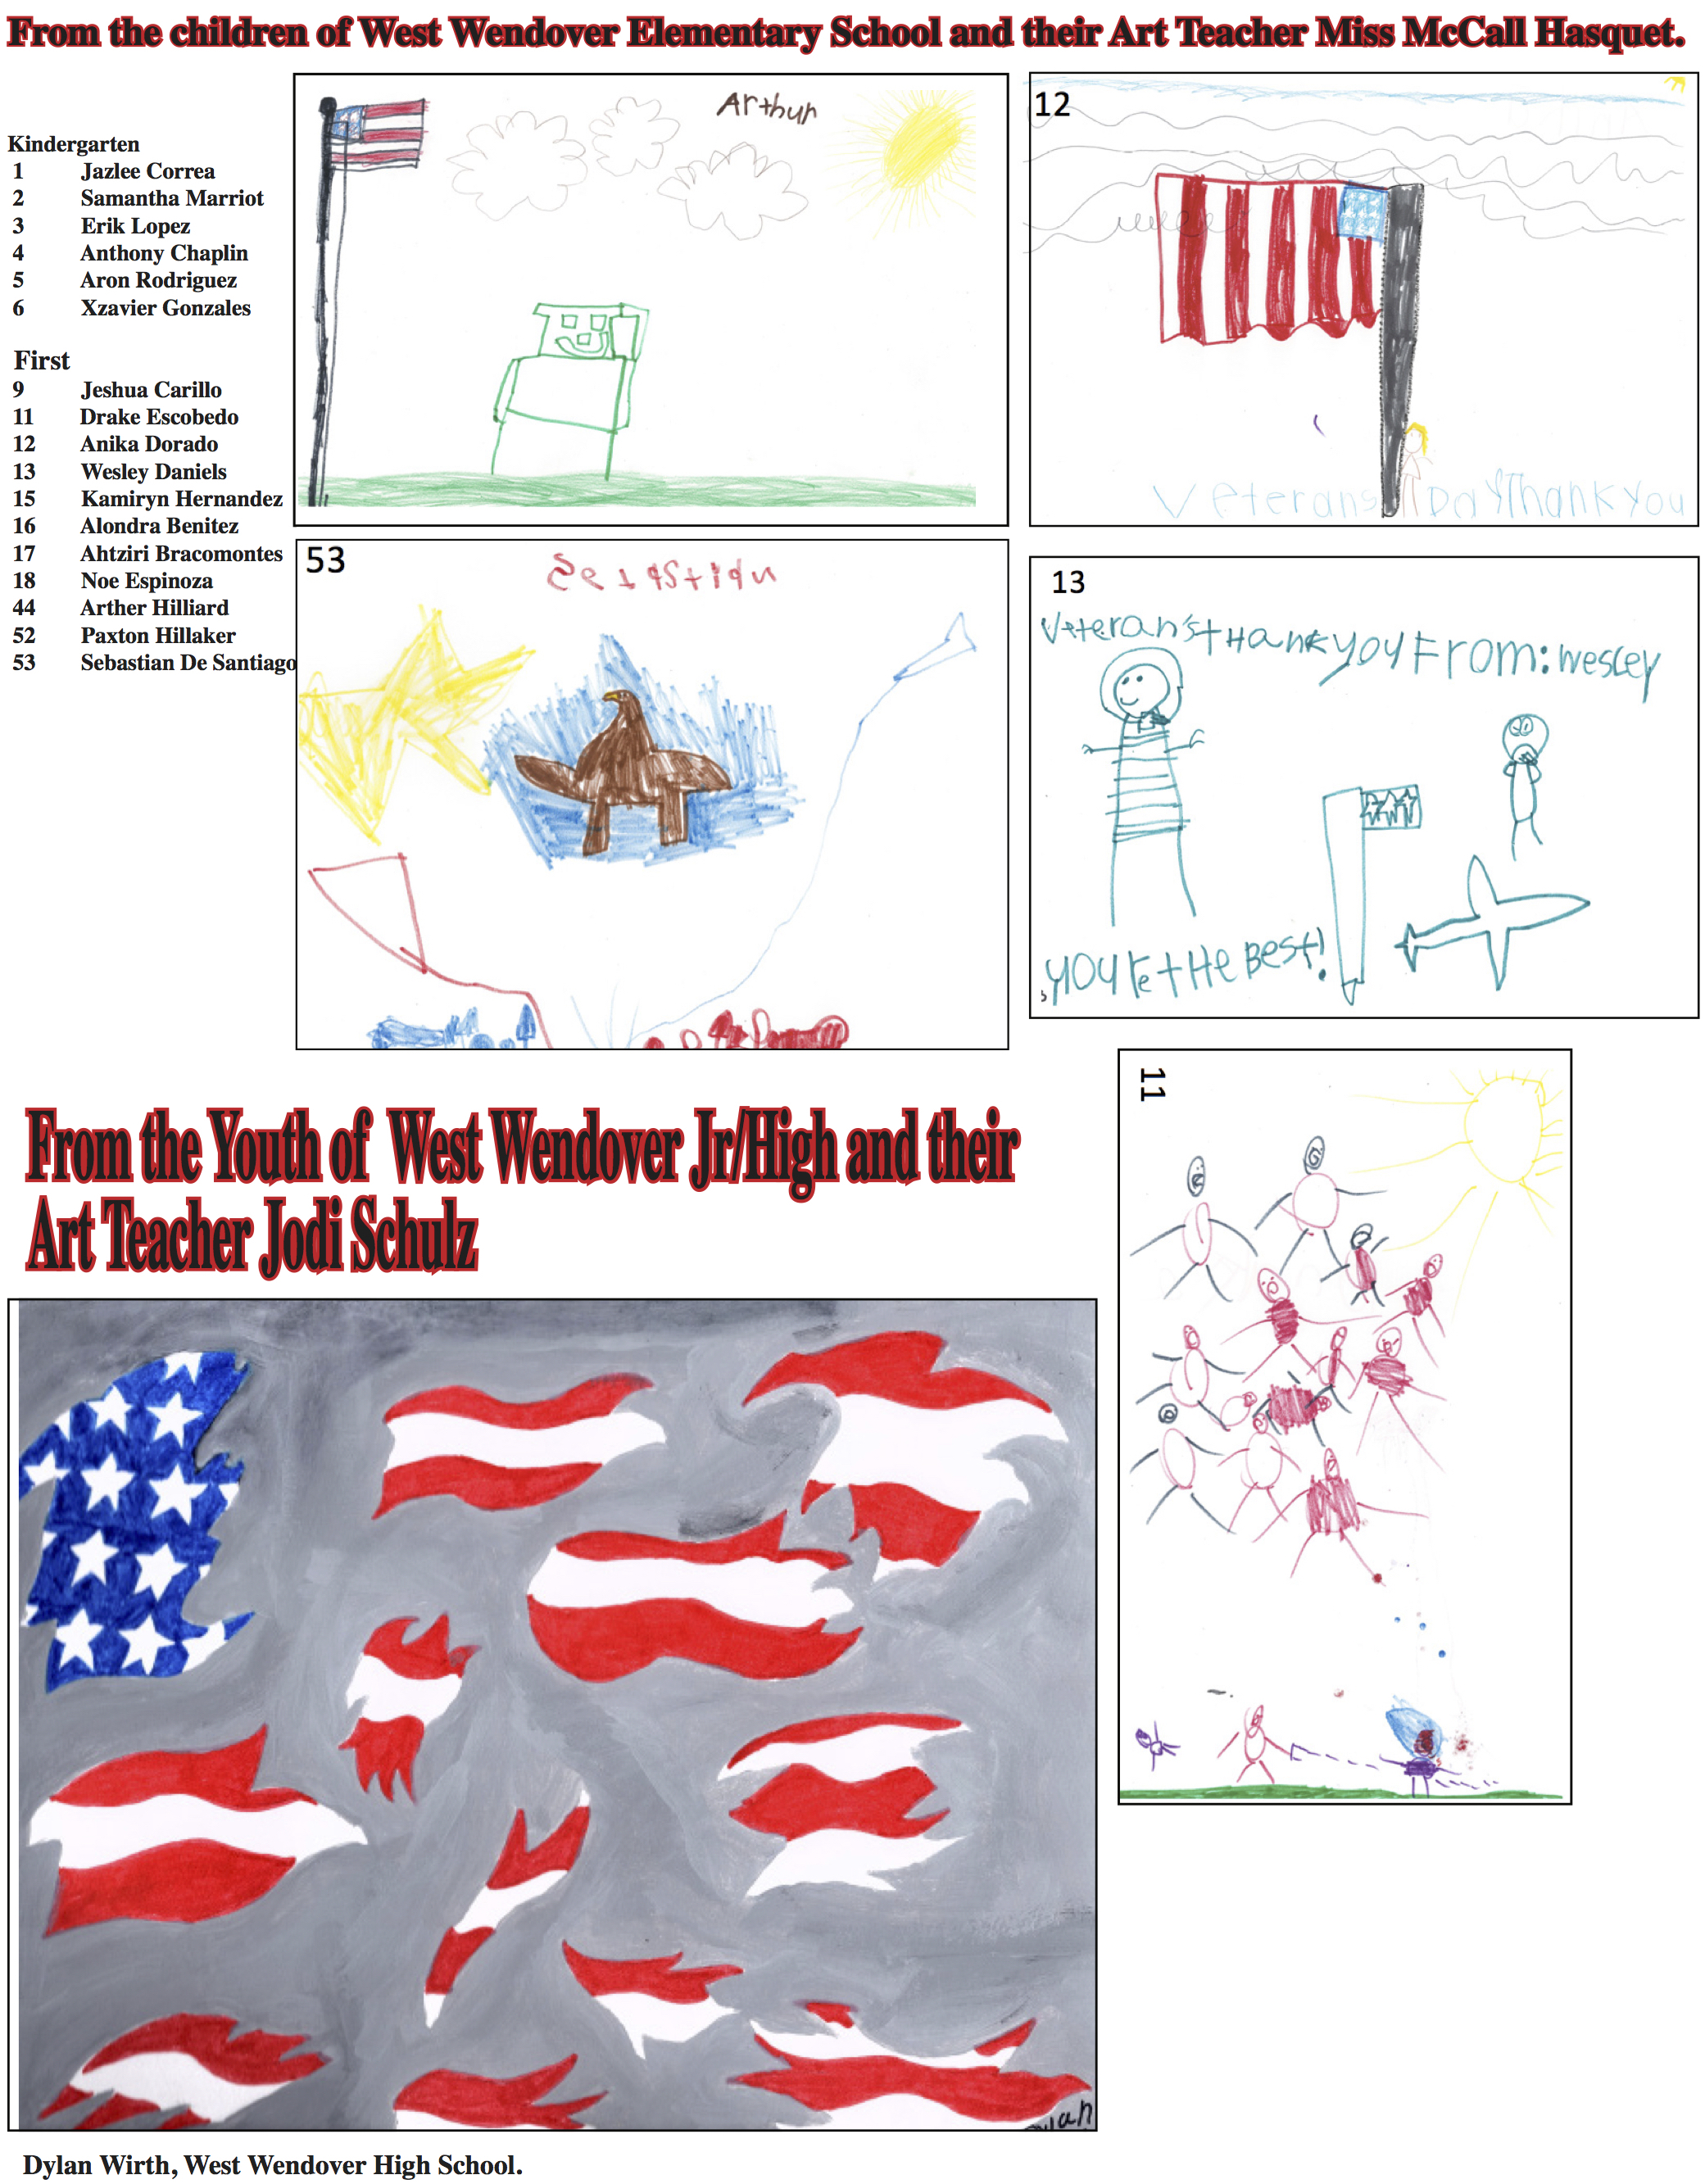 vets-posters-2-111716